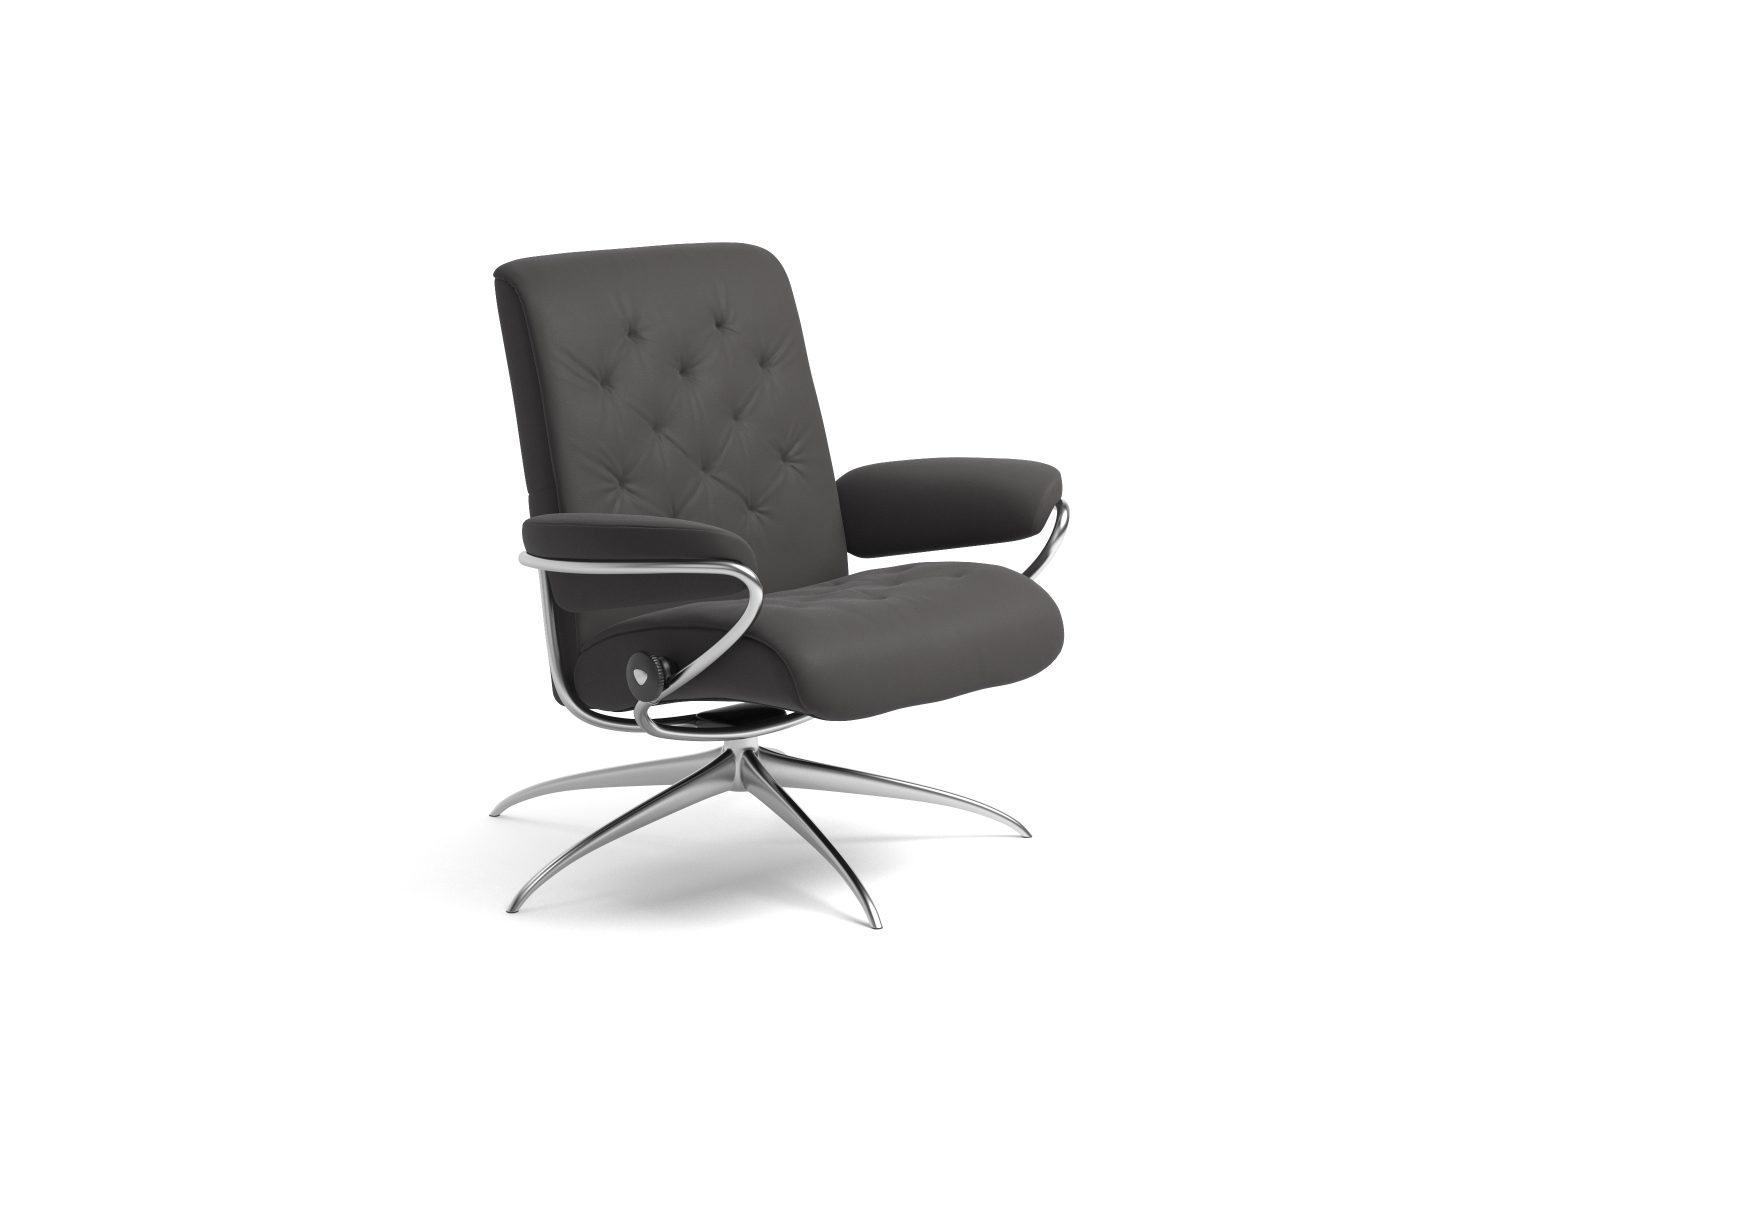 Möbel Sessel Möbel Busch Möbel A Z Sessel Hocker Stressless Stressless